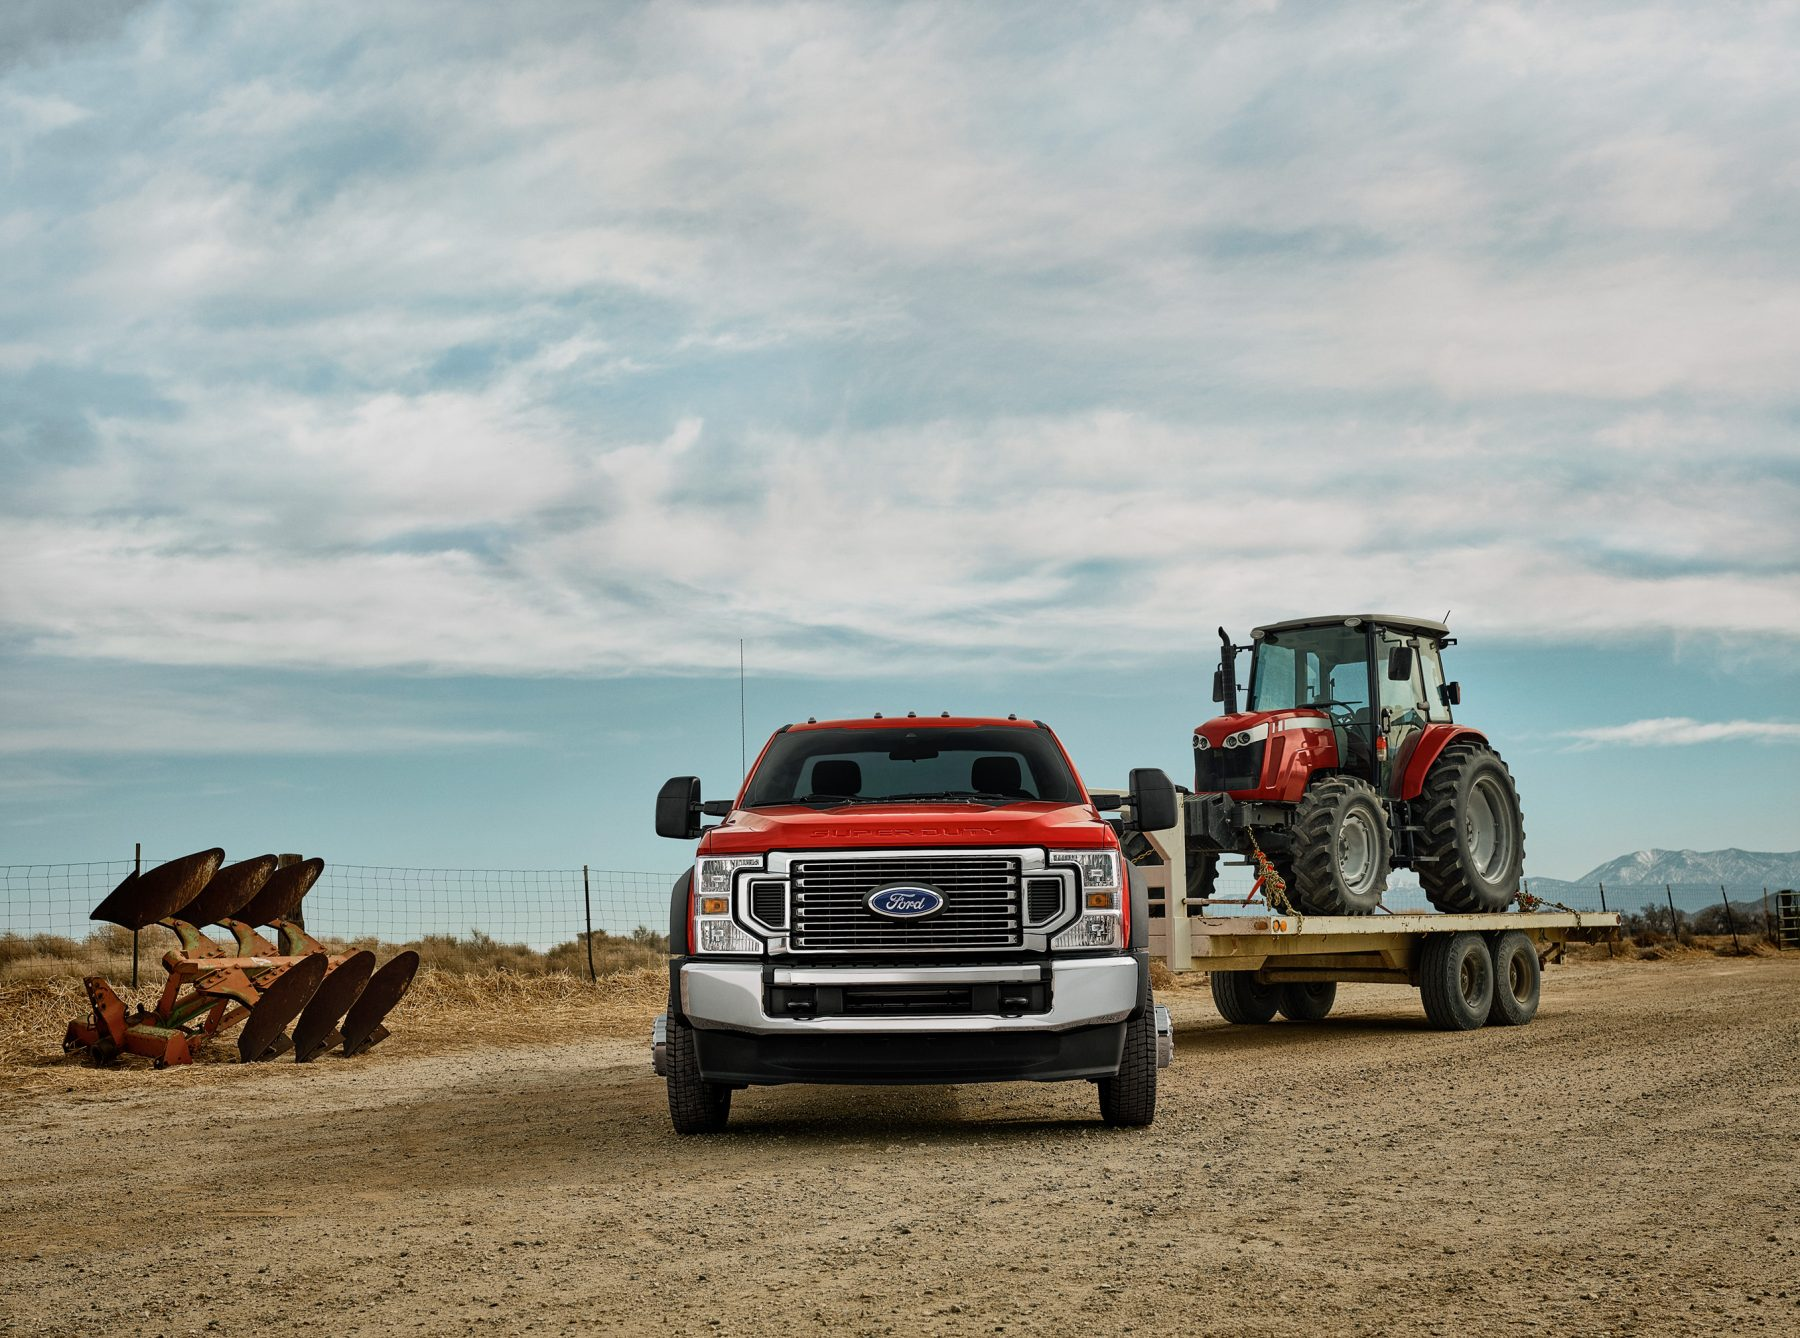 2021 Ford F-450 6.7L Powerstroke Towing